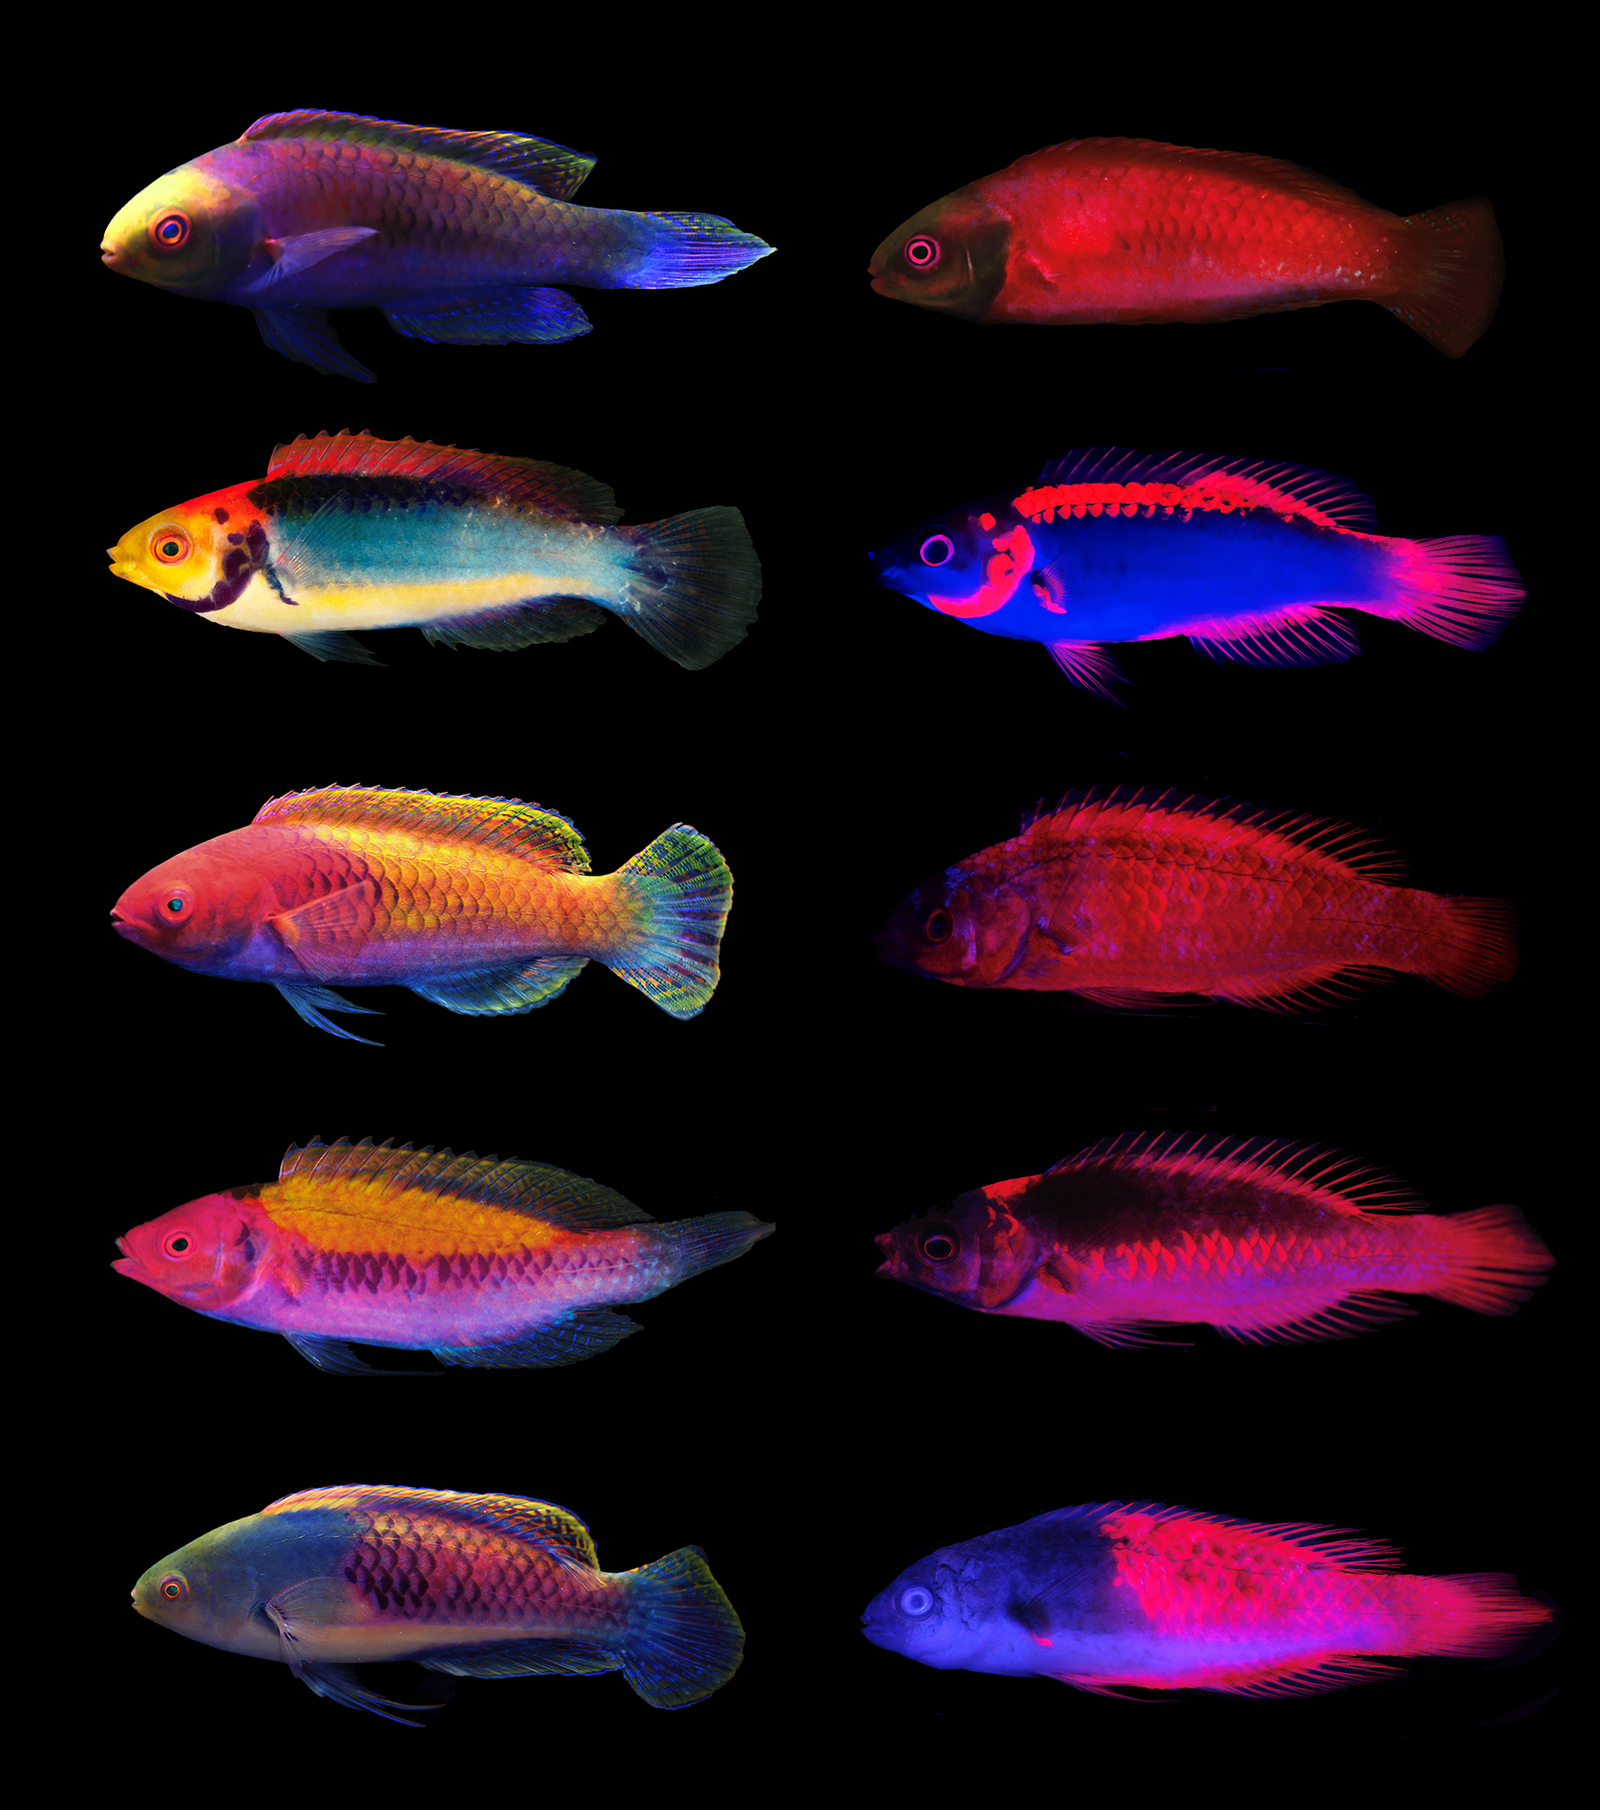 The Cirrhilabrus solorensis complex of fairy wrasses exhibit strong patterns of fluorescence under long wavelengths. These patterns can be used to tell species apart from each other. (A) Cirrhilabrus solorensis; (B) Cirrhilabrus aquamarinus; (C) Cirrhilab